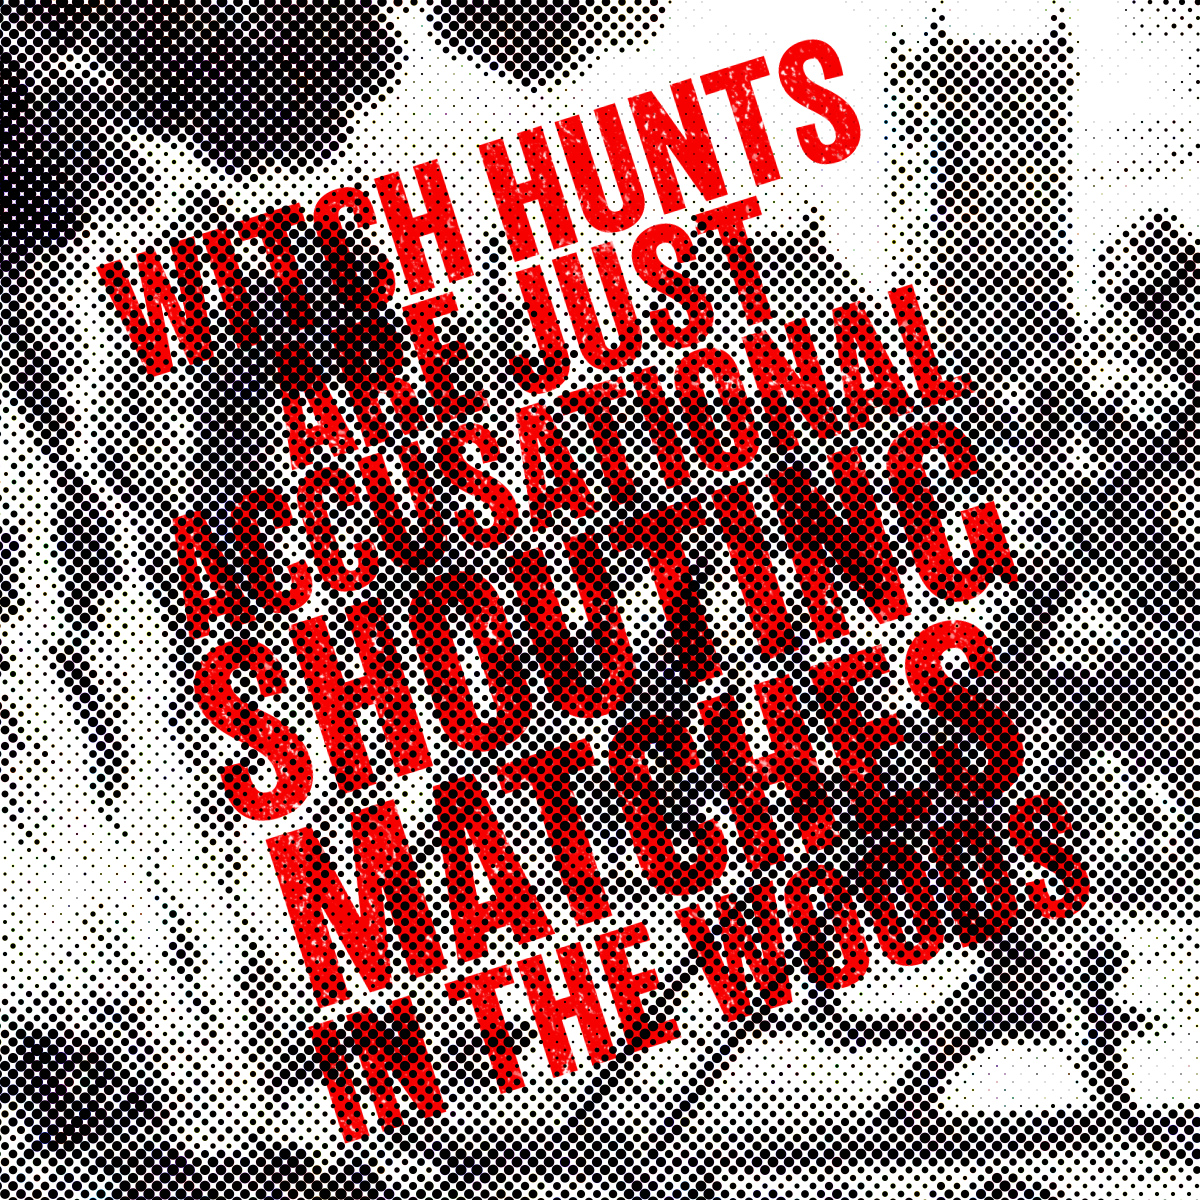 witchhunts.png